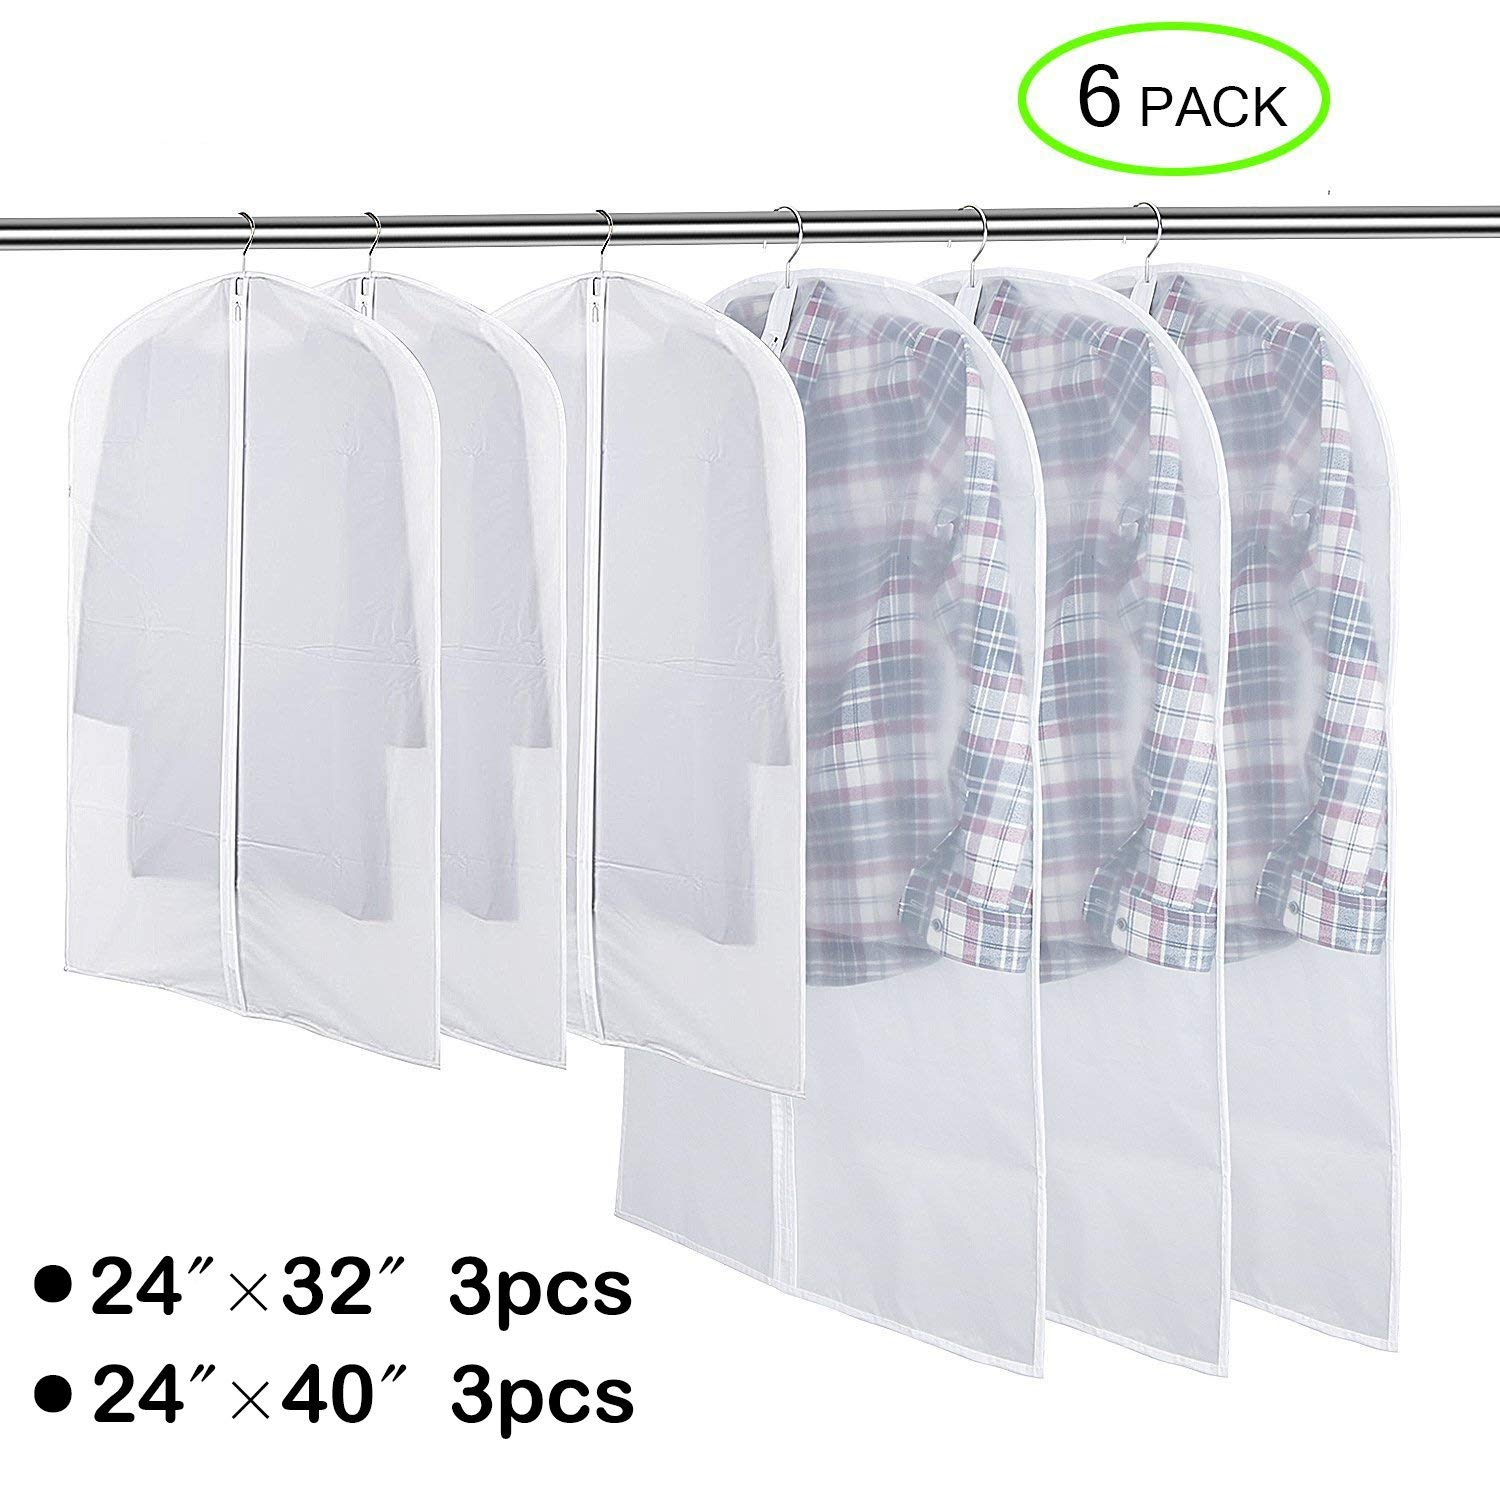 Flee 40'' 6 Pack Garment Bag For Closet Storage,Hanging Suit Bags Clear Cover Foldable Breathable Moth-proof Medium & Large Dresses Bags Set,Sturdy Full Zipper Dustproof Bag for ClothesTravel